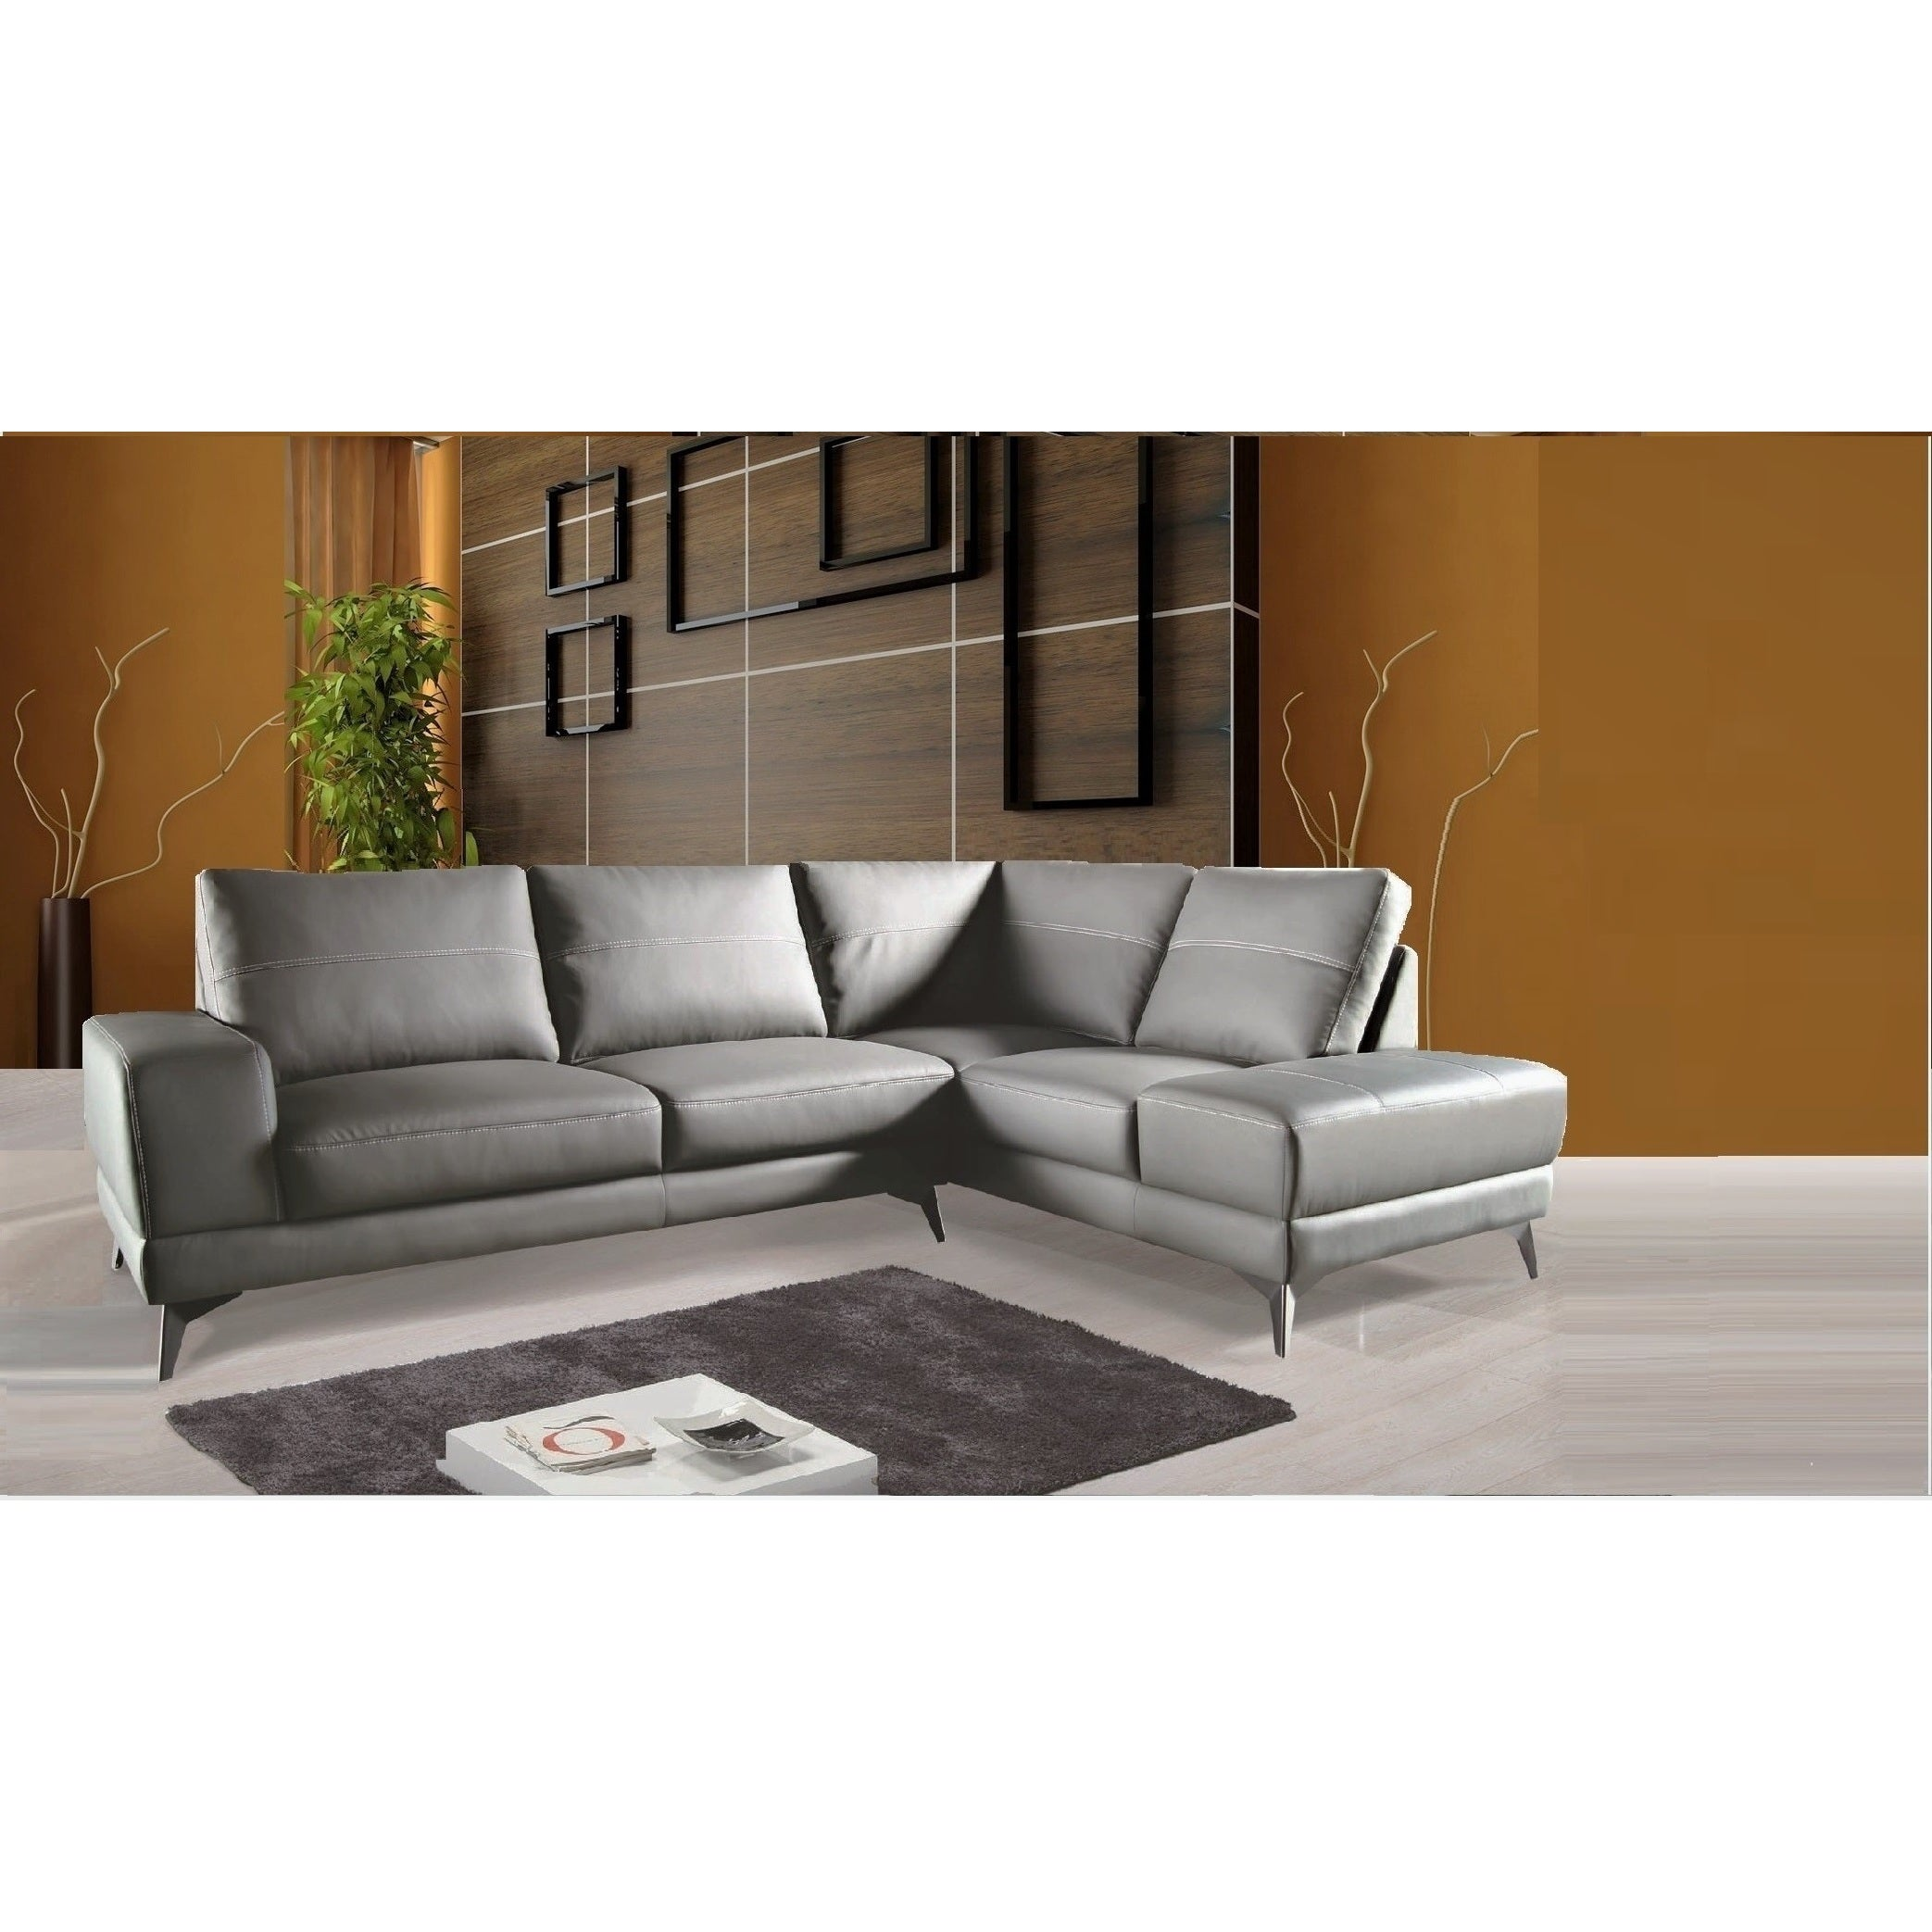 Shop Zoe Sectional Top Grain Leather Sofa Facing Right Stone Grey